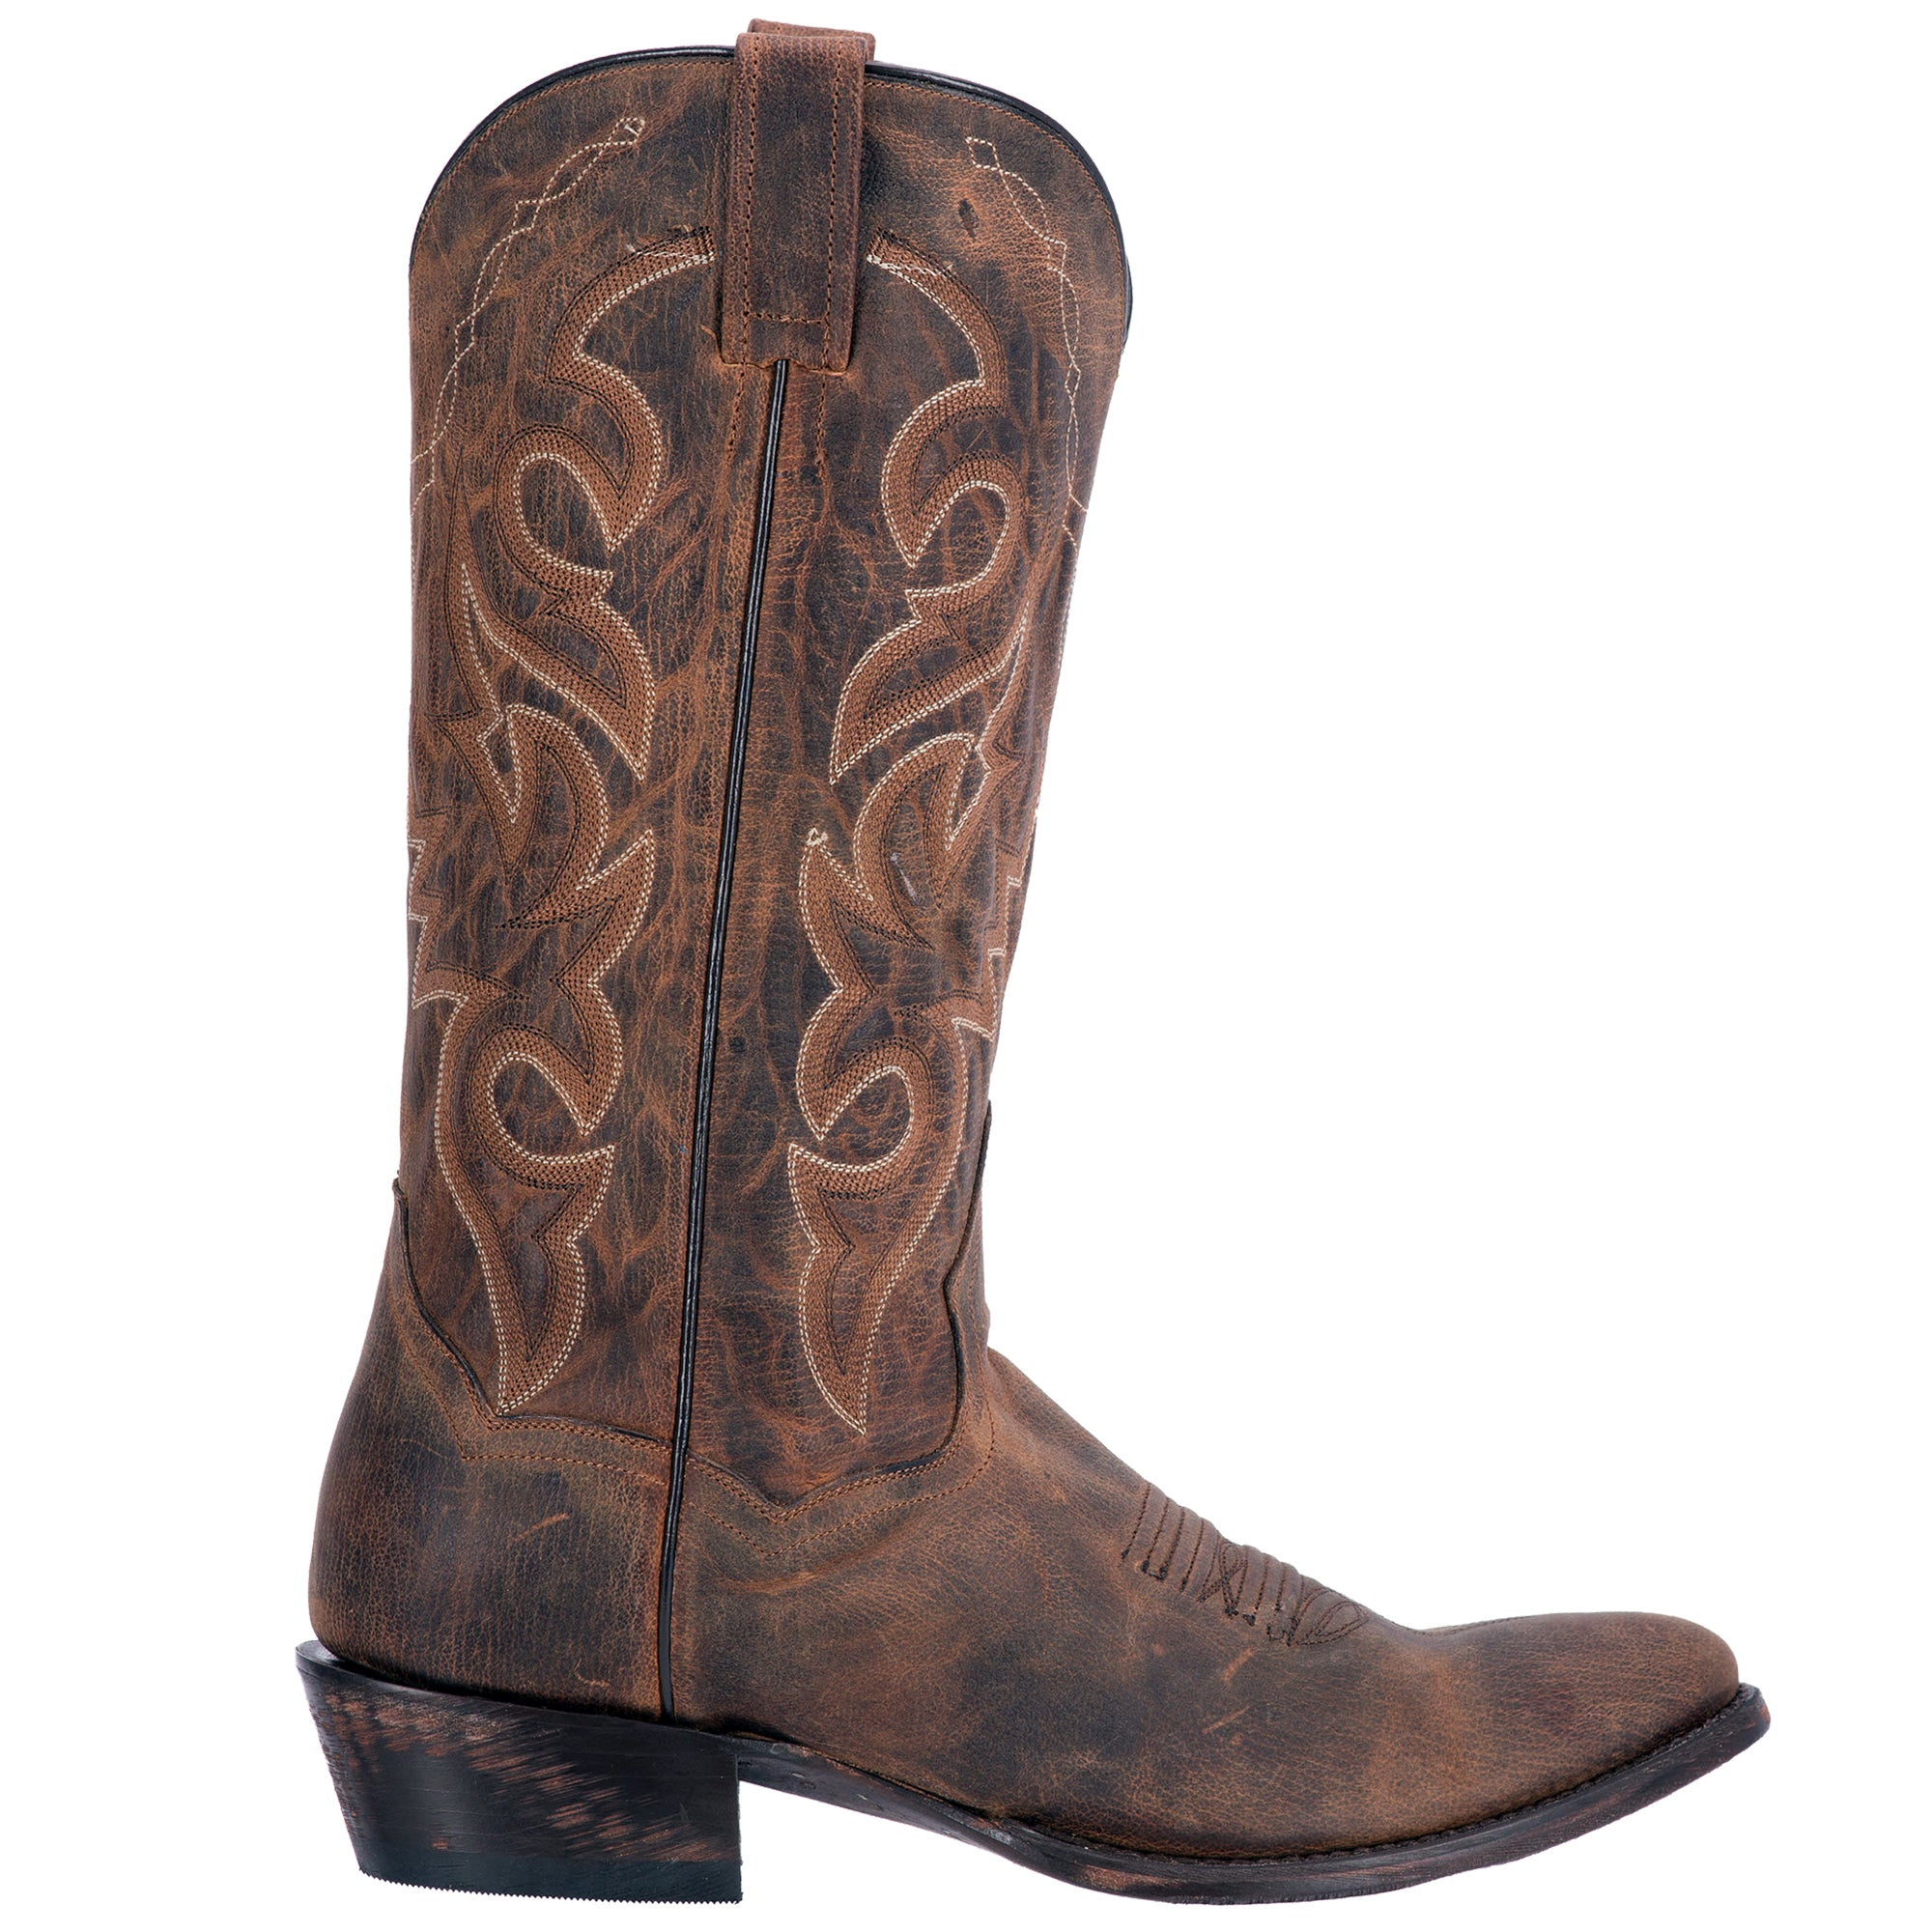 RENEGADE LEATHER BOOT 4197129322538